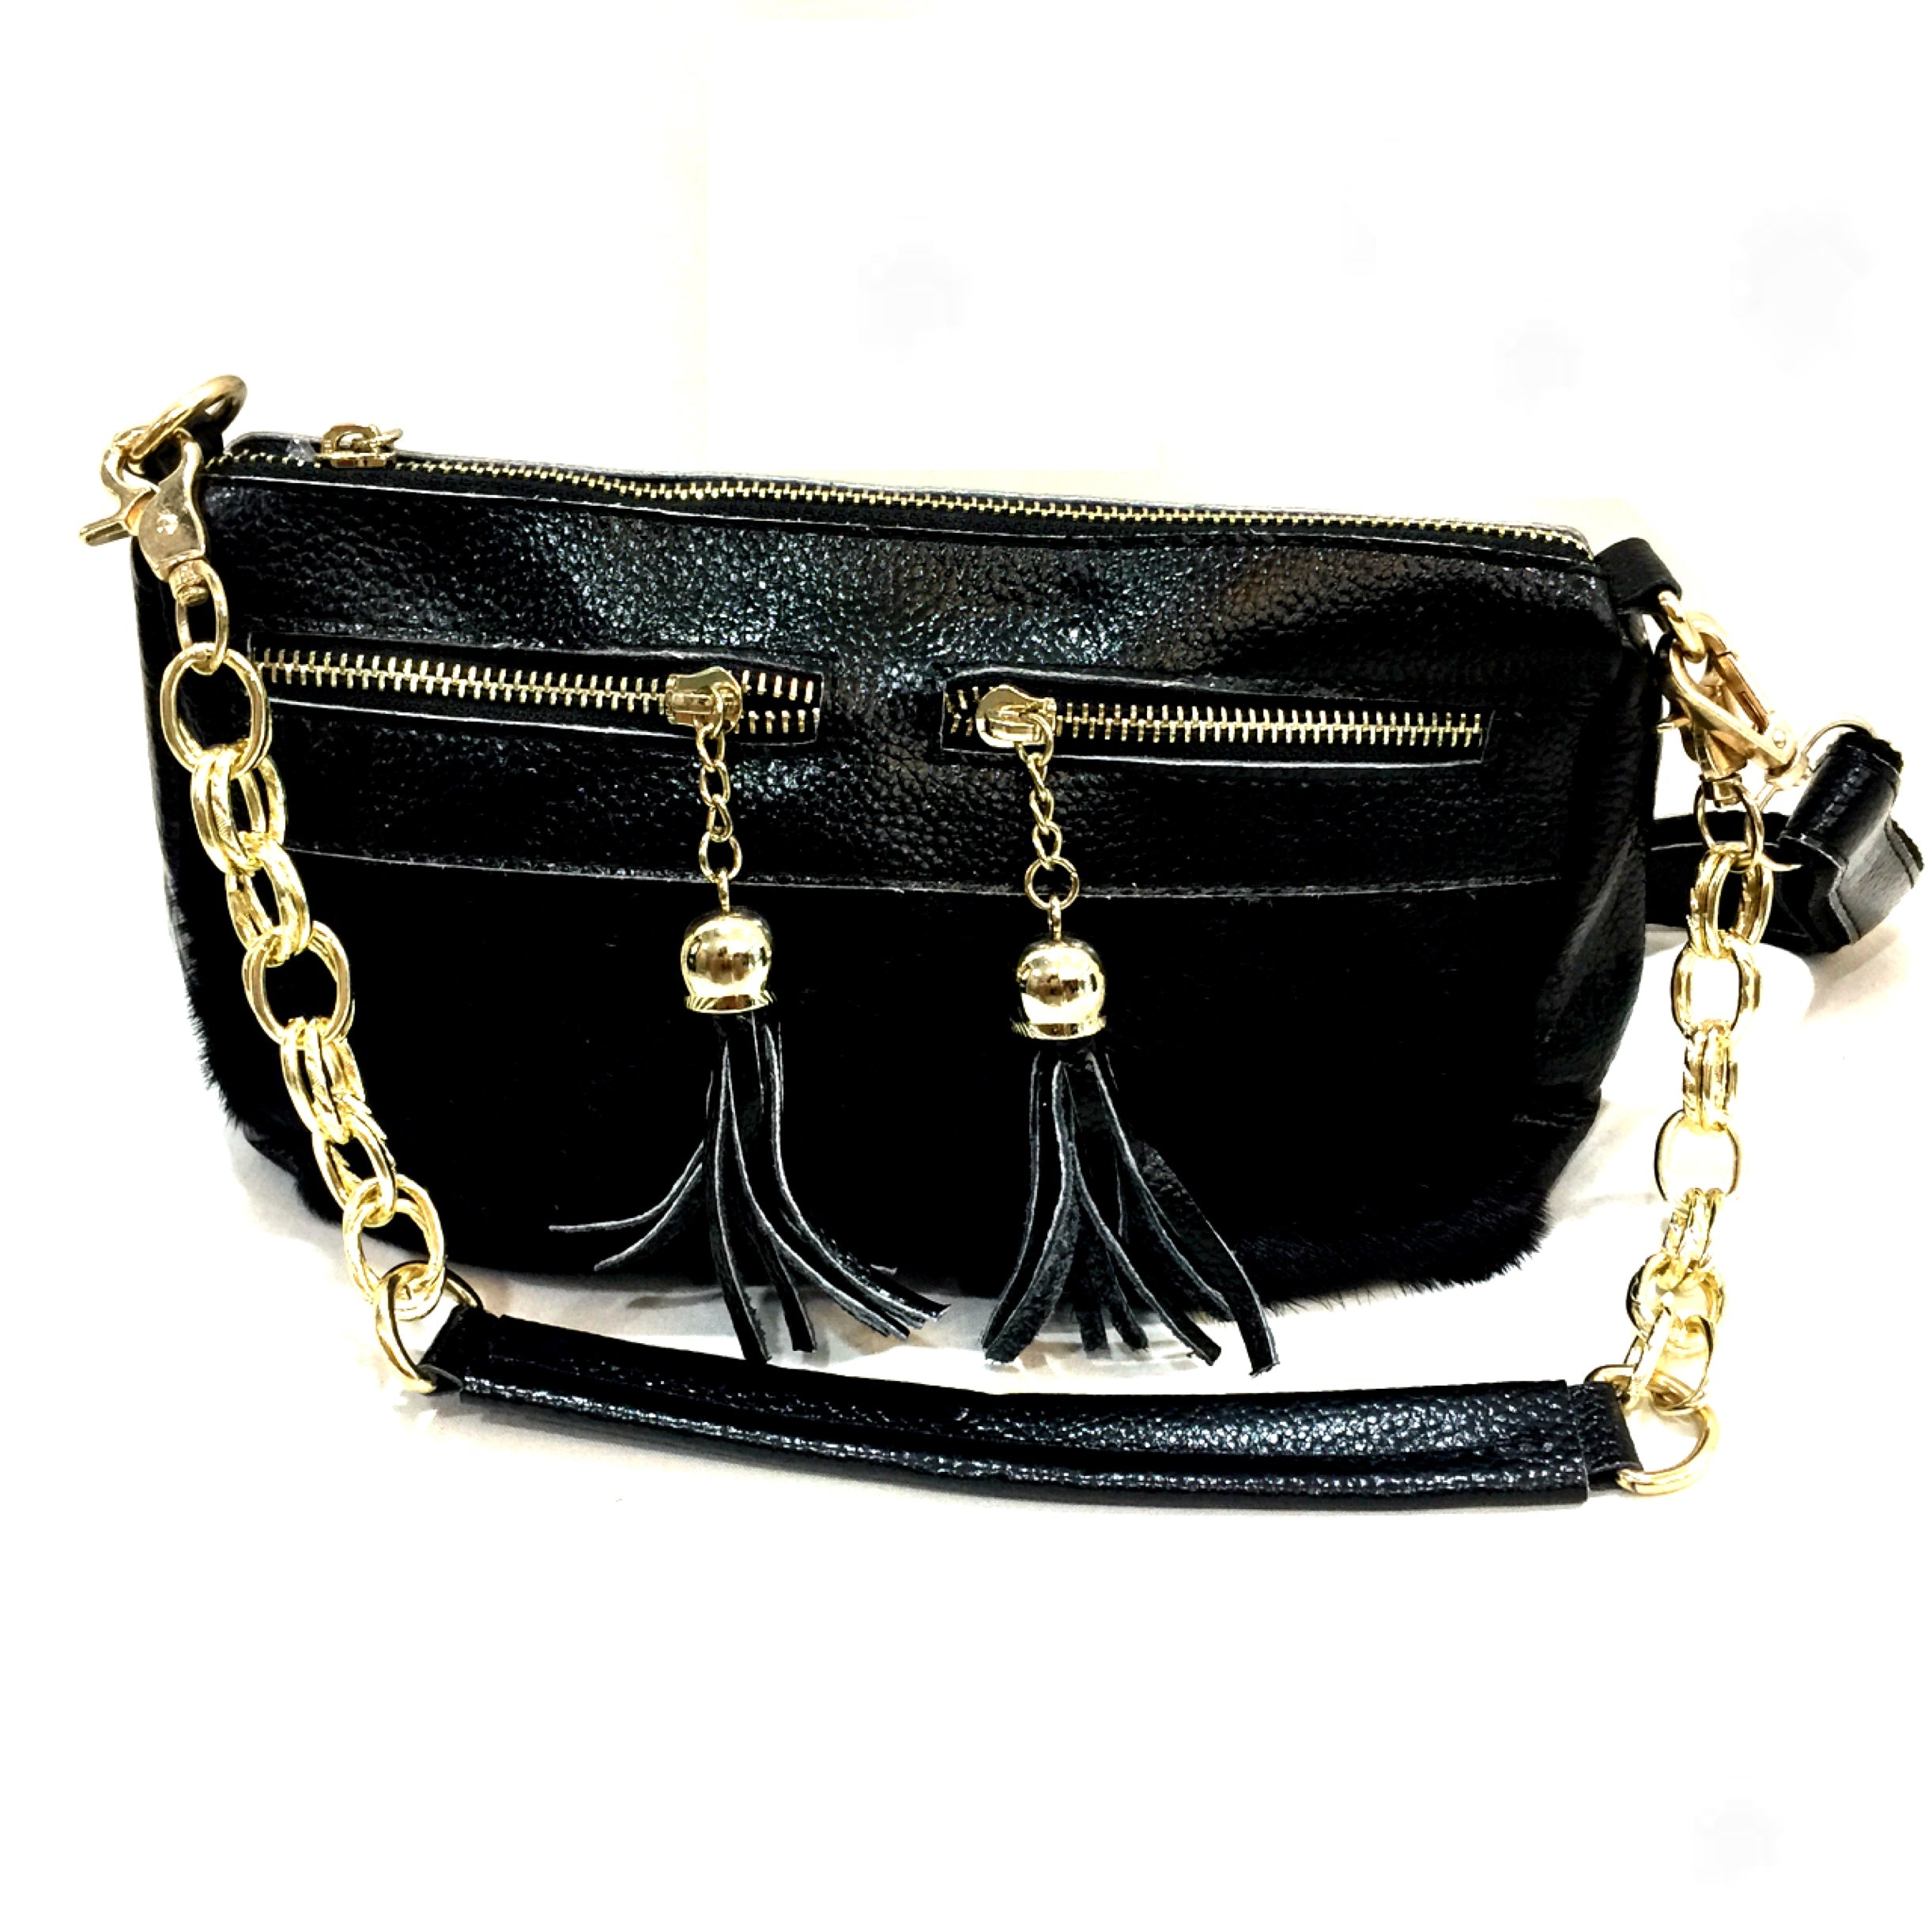 Black Trendy Vegan Leather Handbag